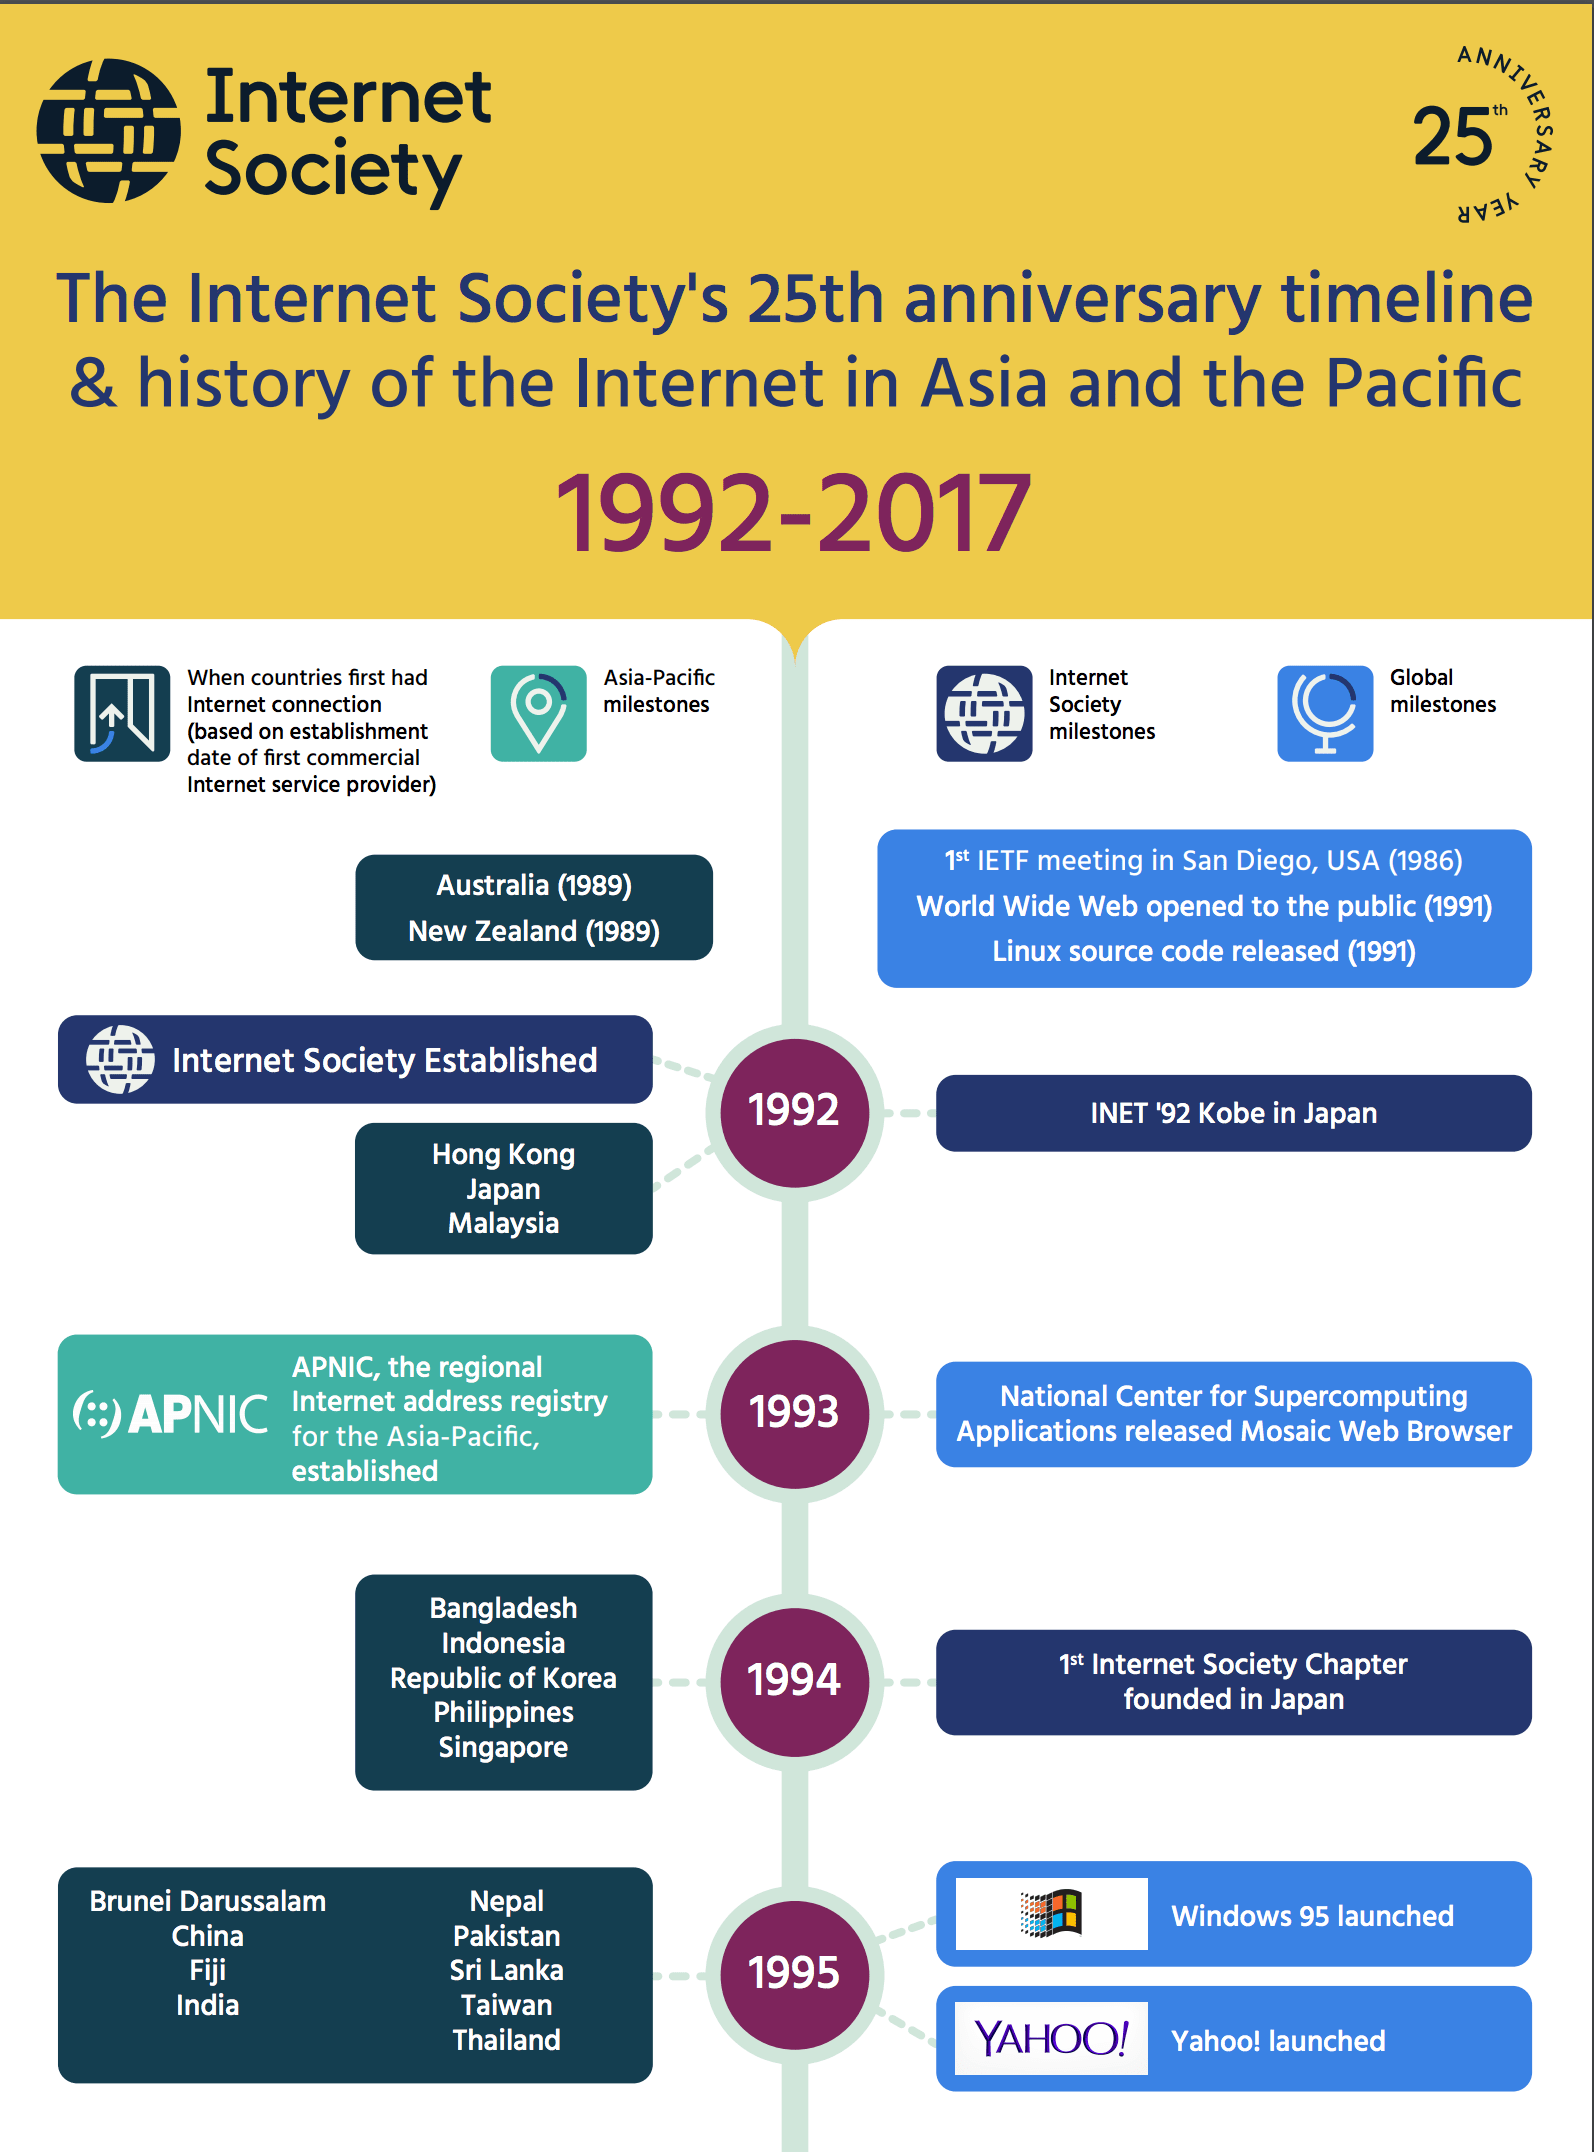 Timeline History Of The Internet In Asia And The Pacific